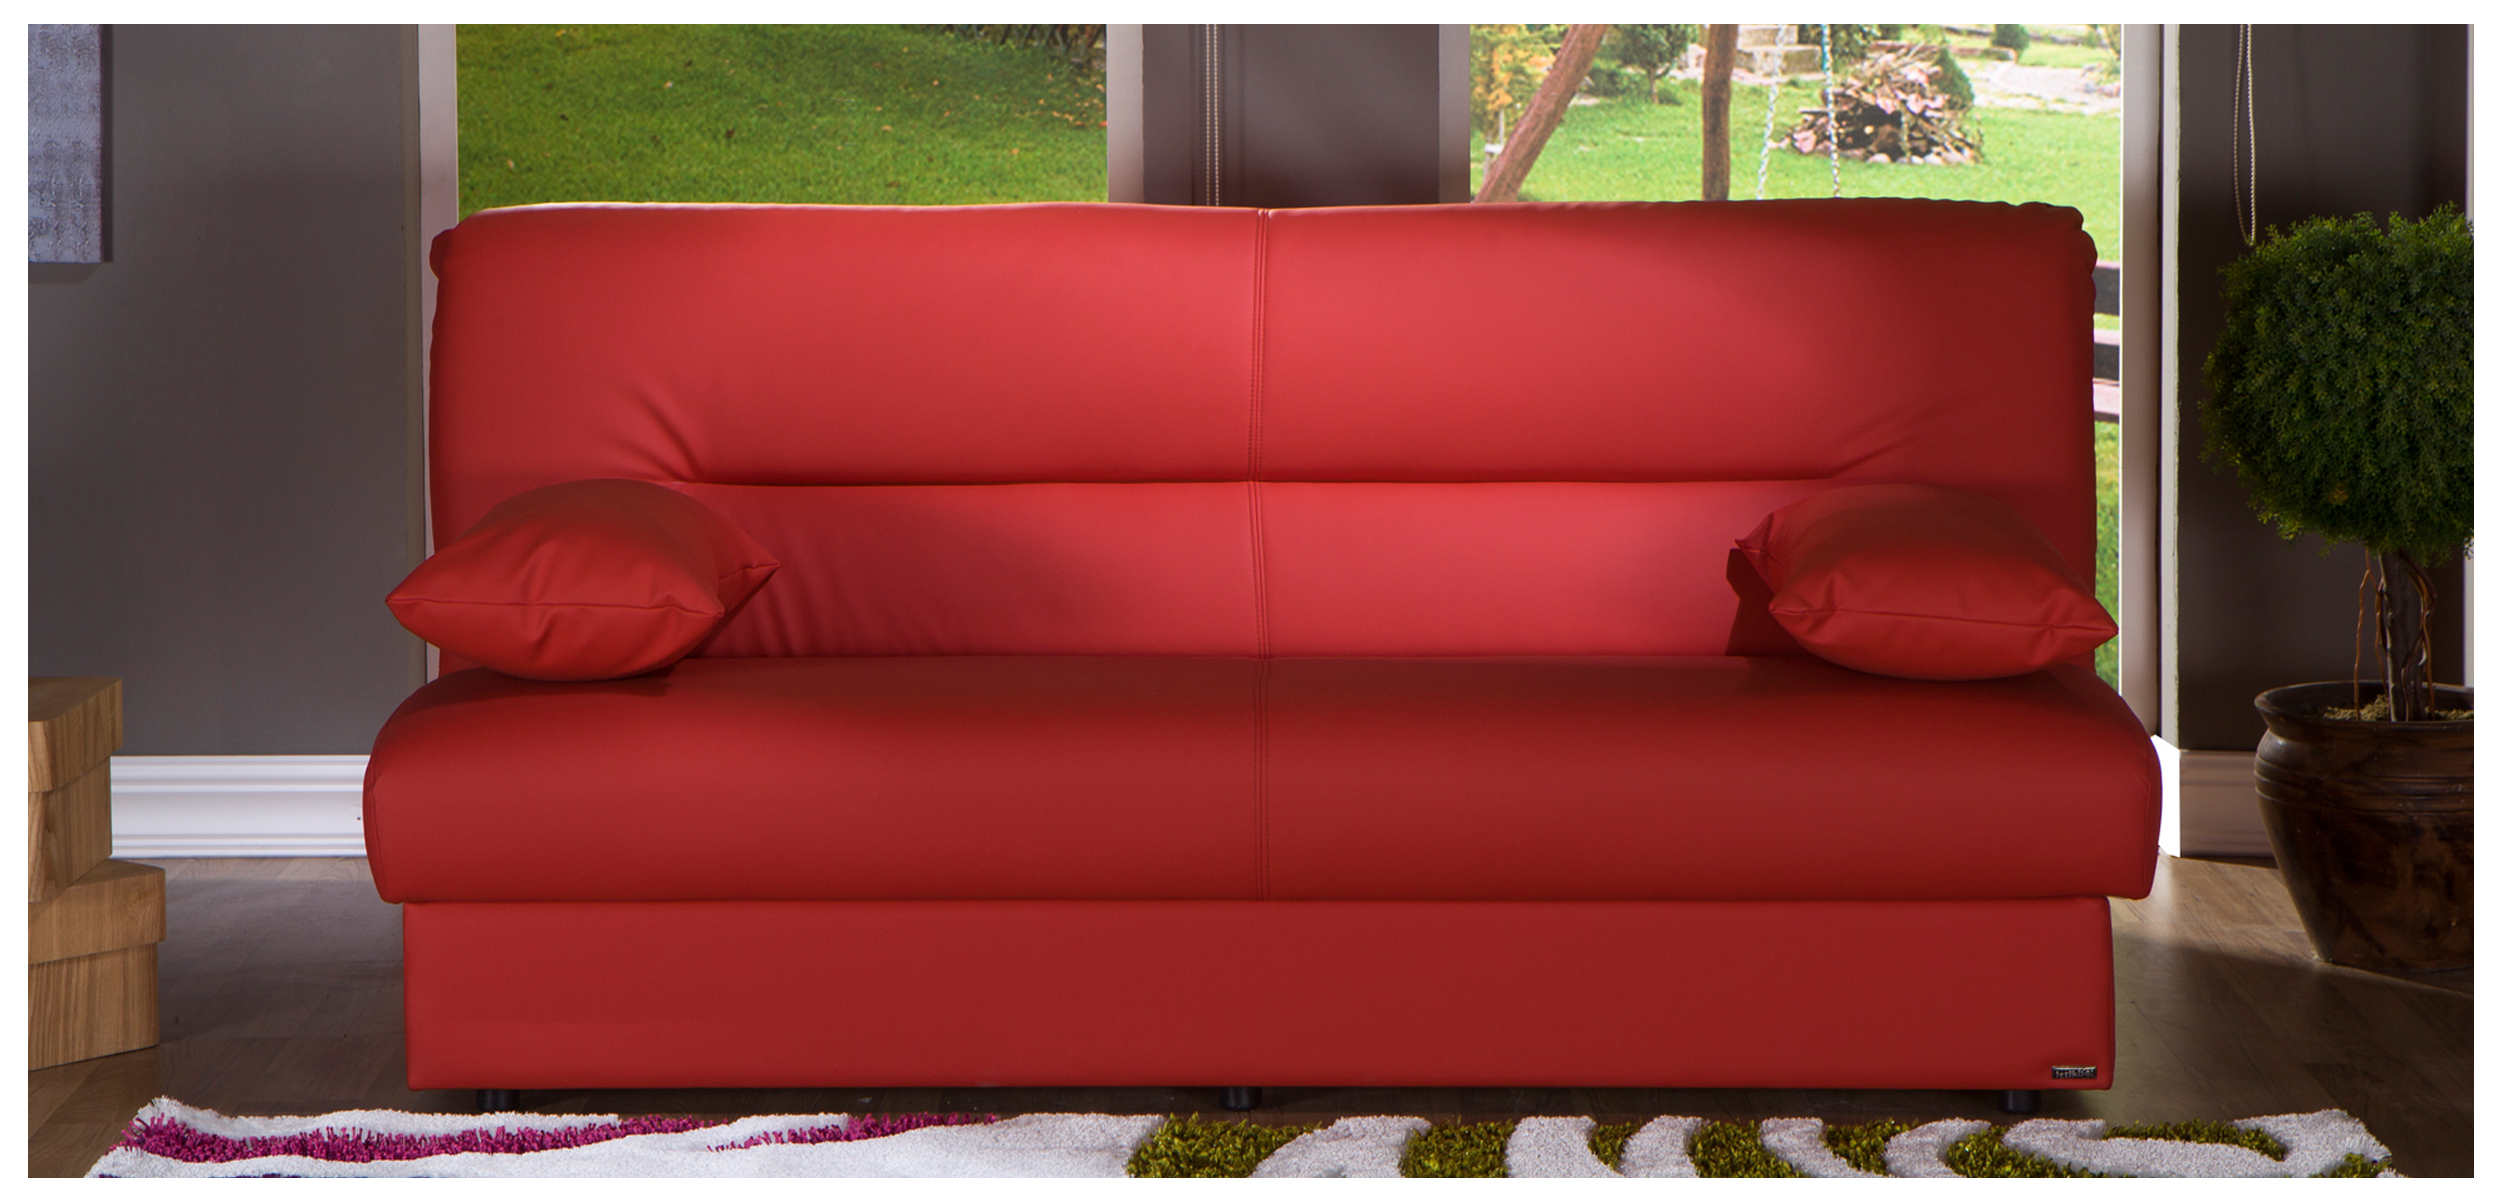 Regata Sofabed, Escudo Red Buy Online at Best Price